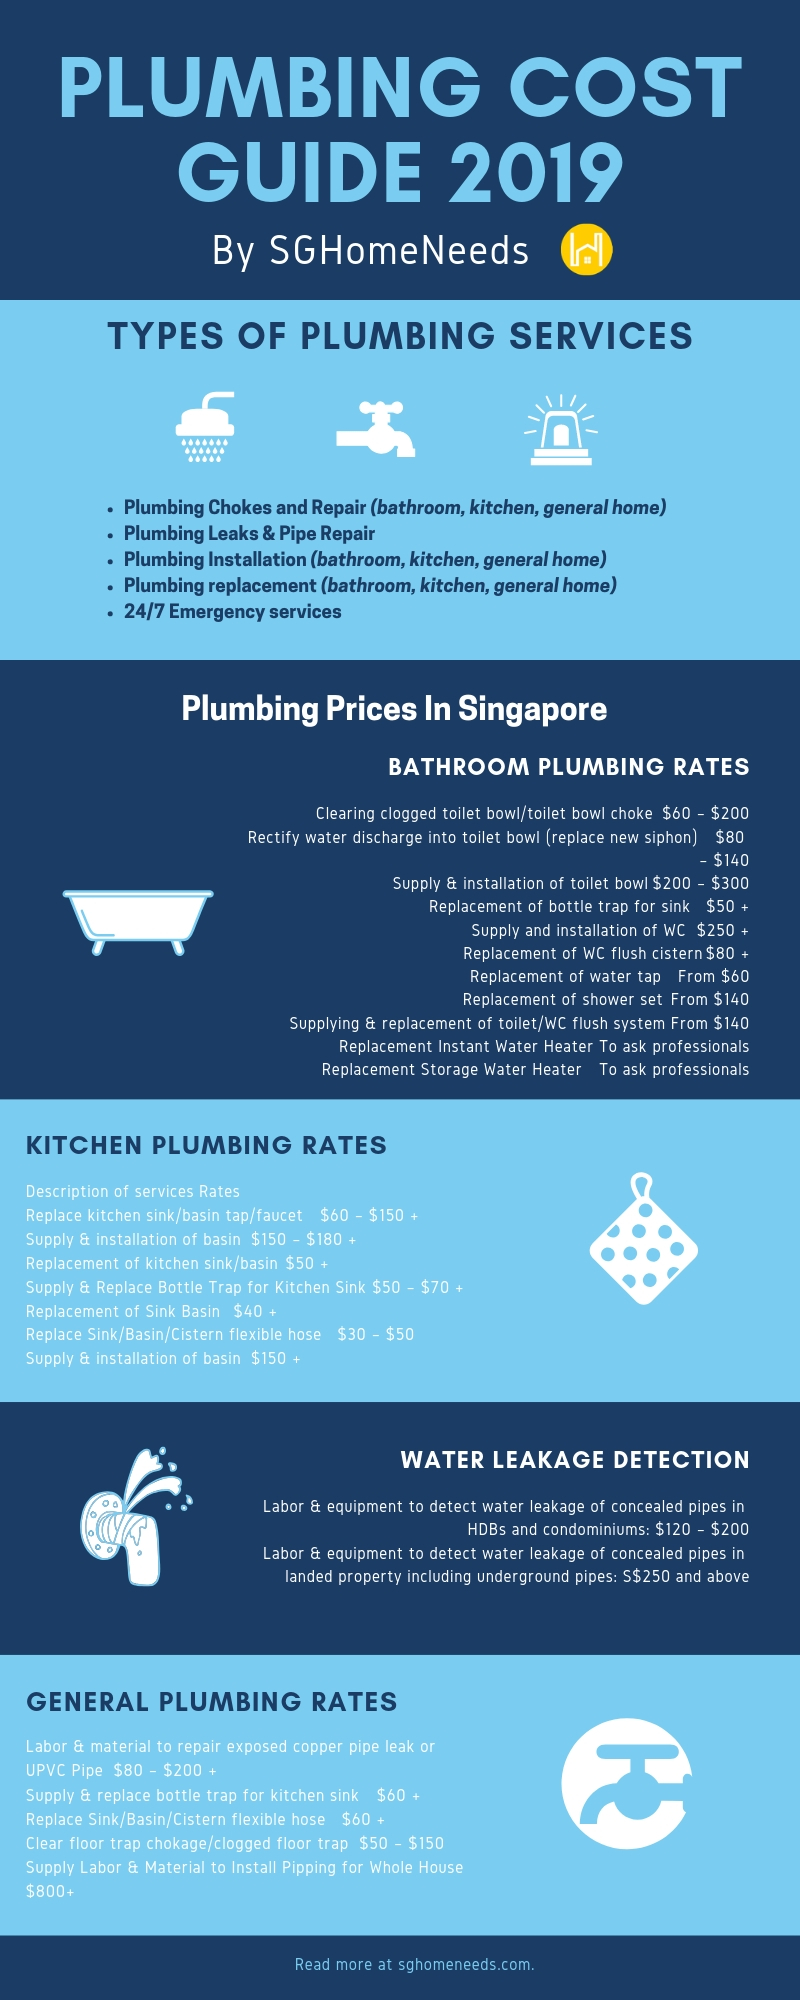 Plumbing Cost Guide in Singapore 2019